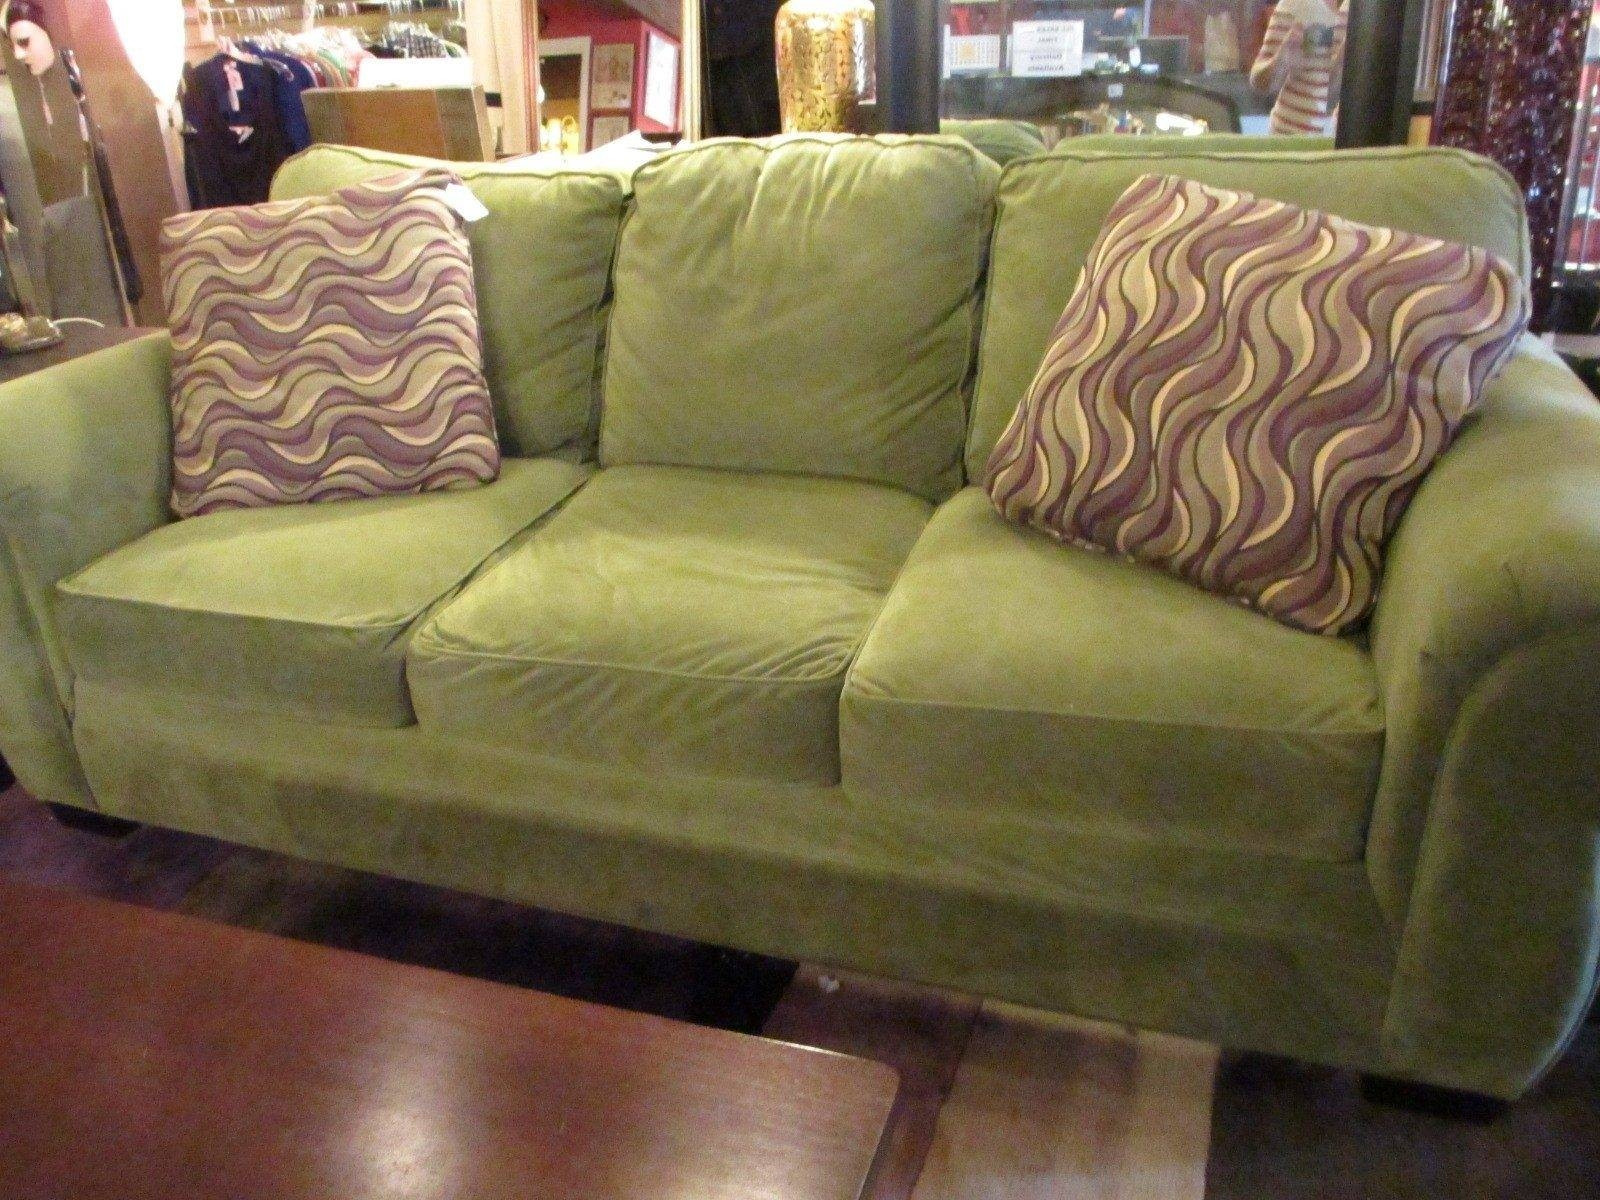 Lime Green Sectional Sofa ~ Hmmi Intended For Olive Green Sectional Sofas (View 7 of 15)